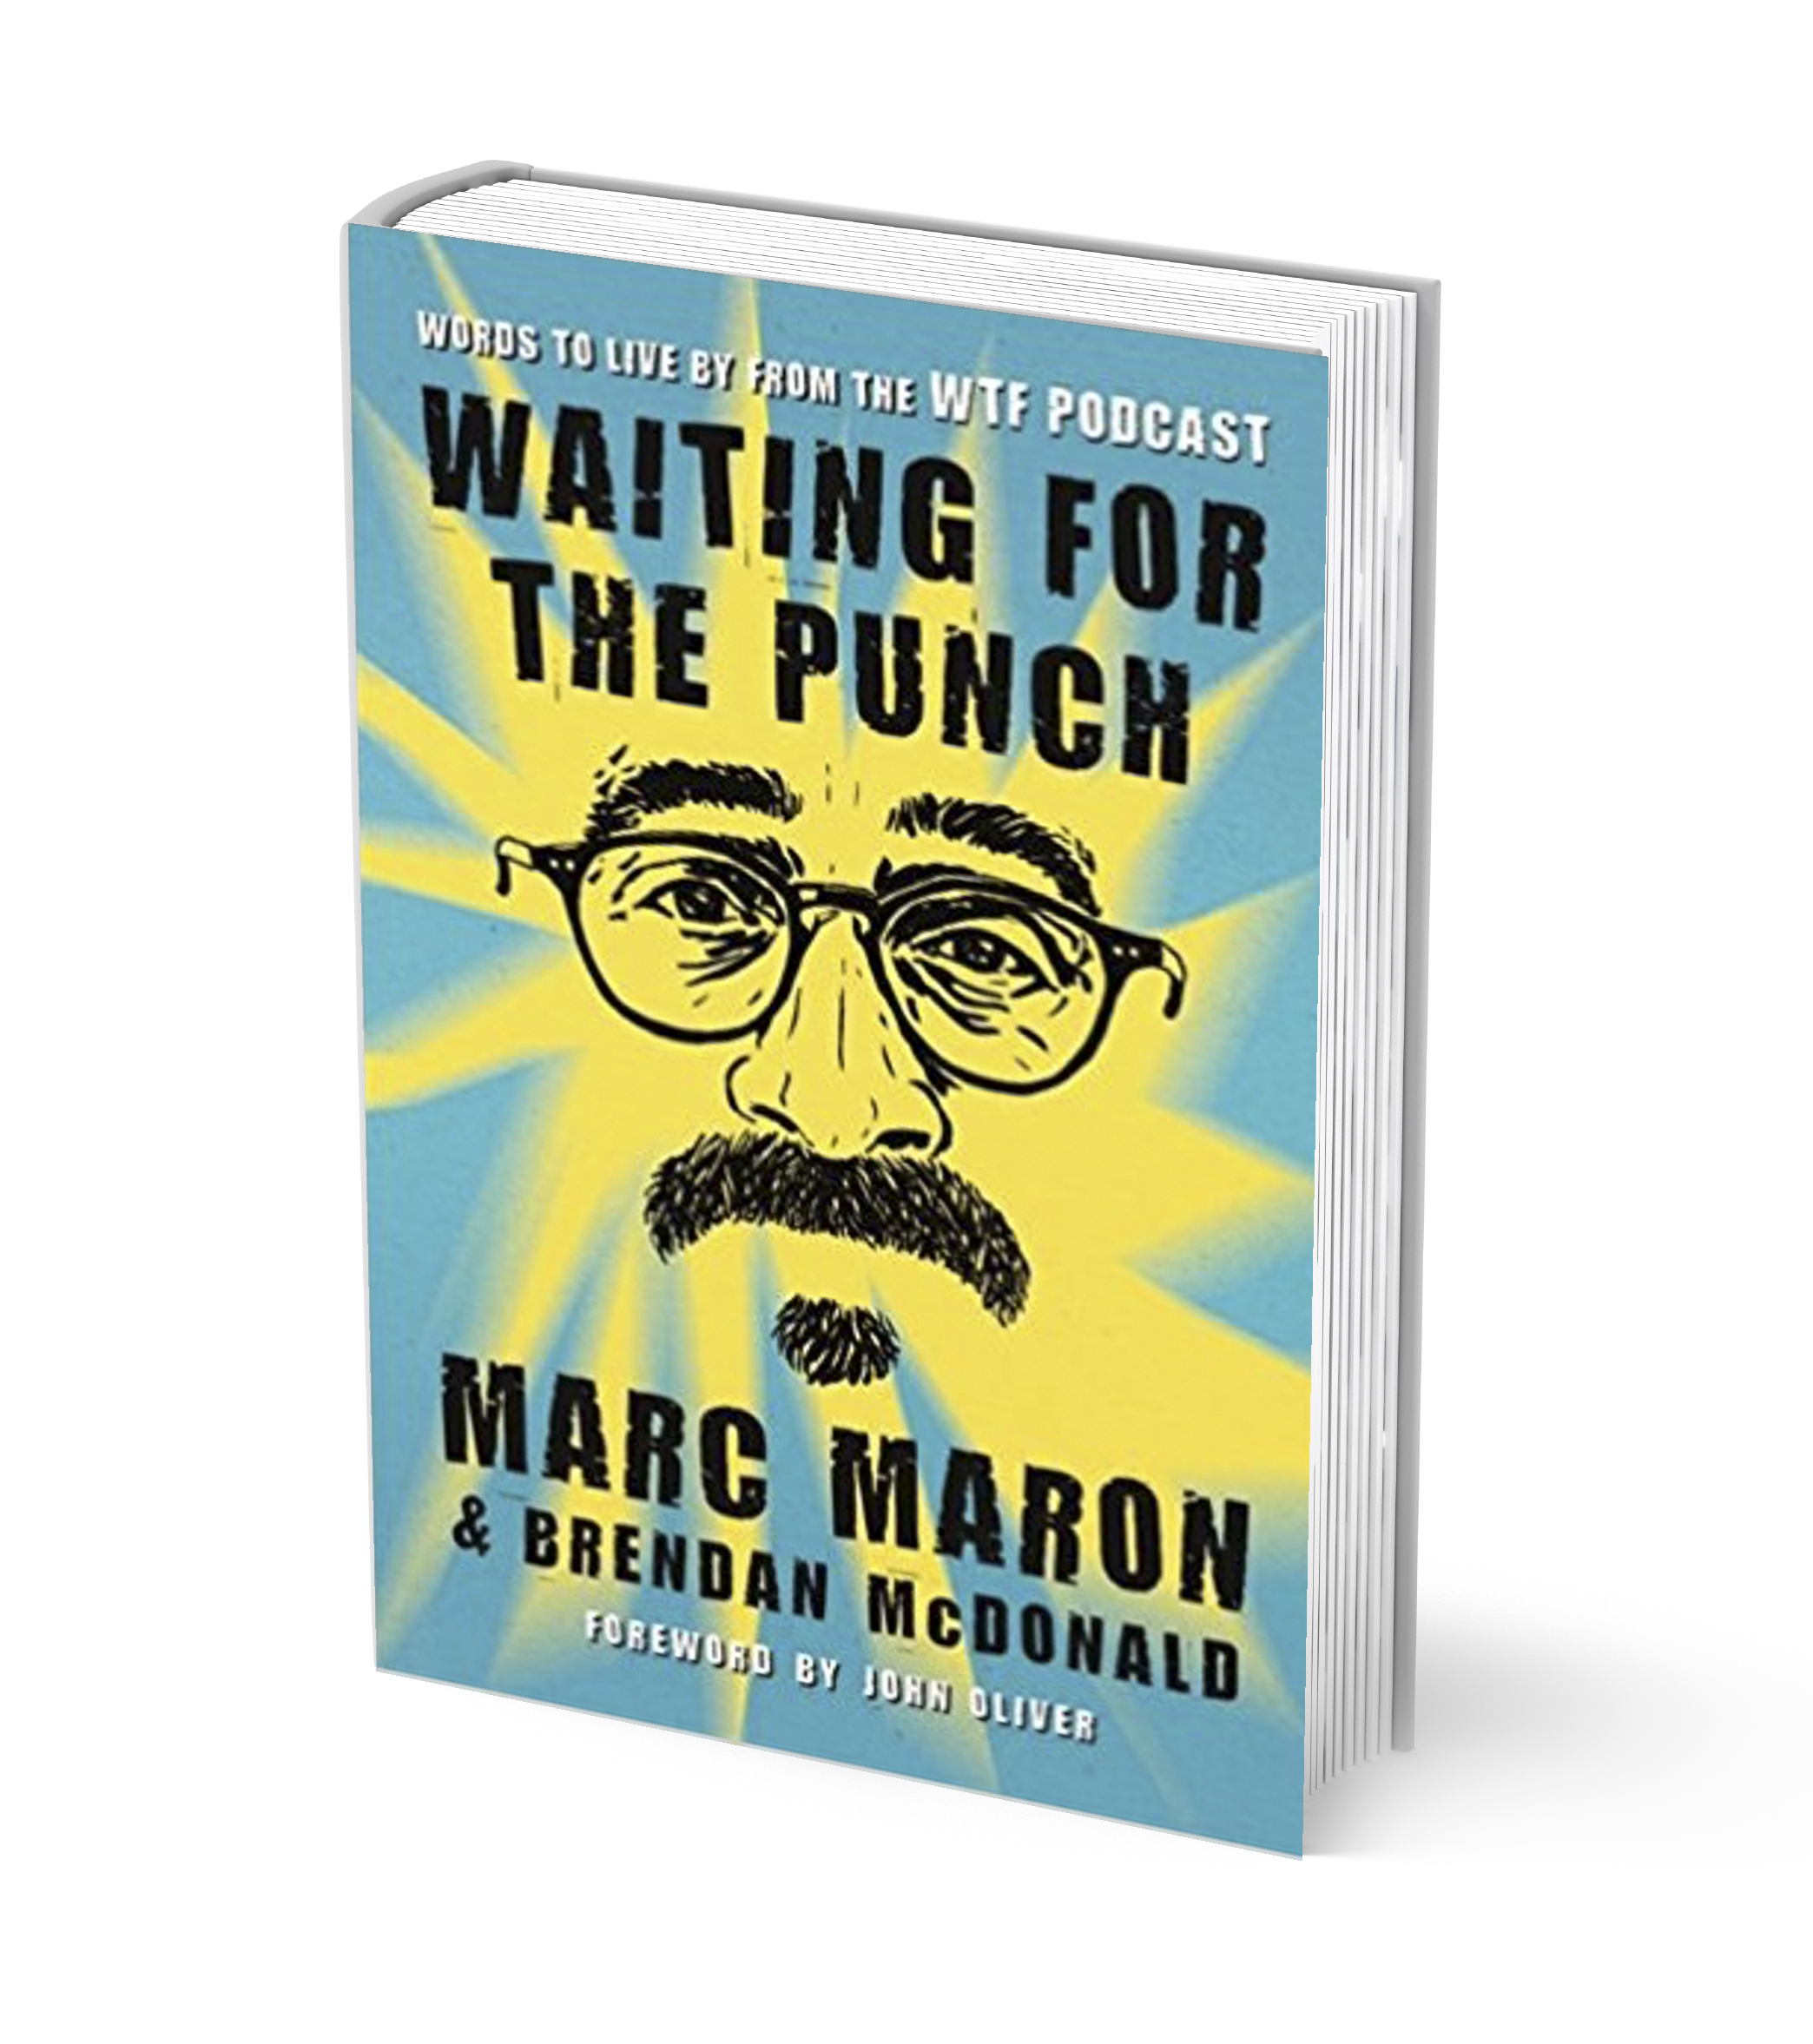 Waiting for the Punch: Words to Live By from the WTF Podcast Marc Maron (CAS'86) and Brendan McDonald